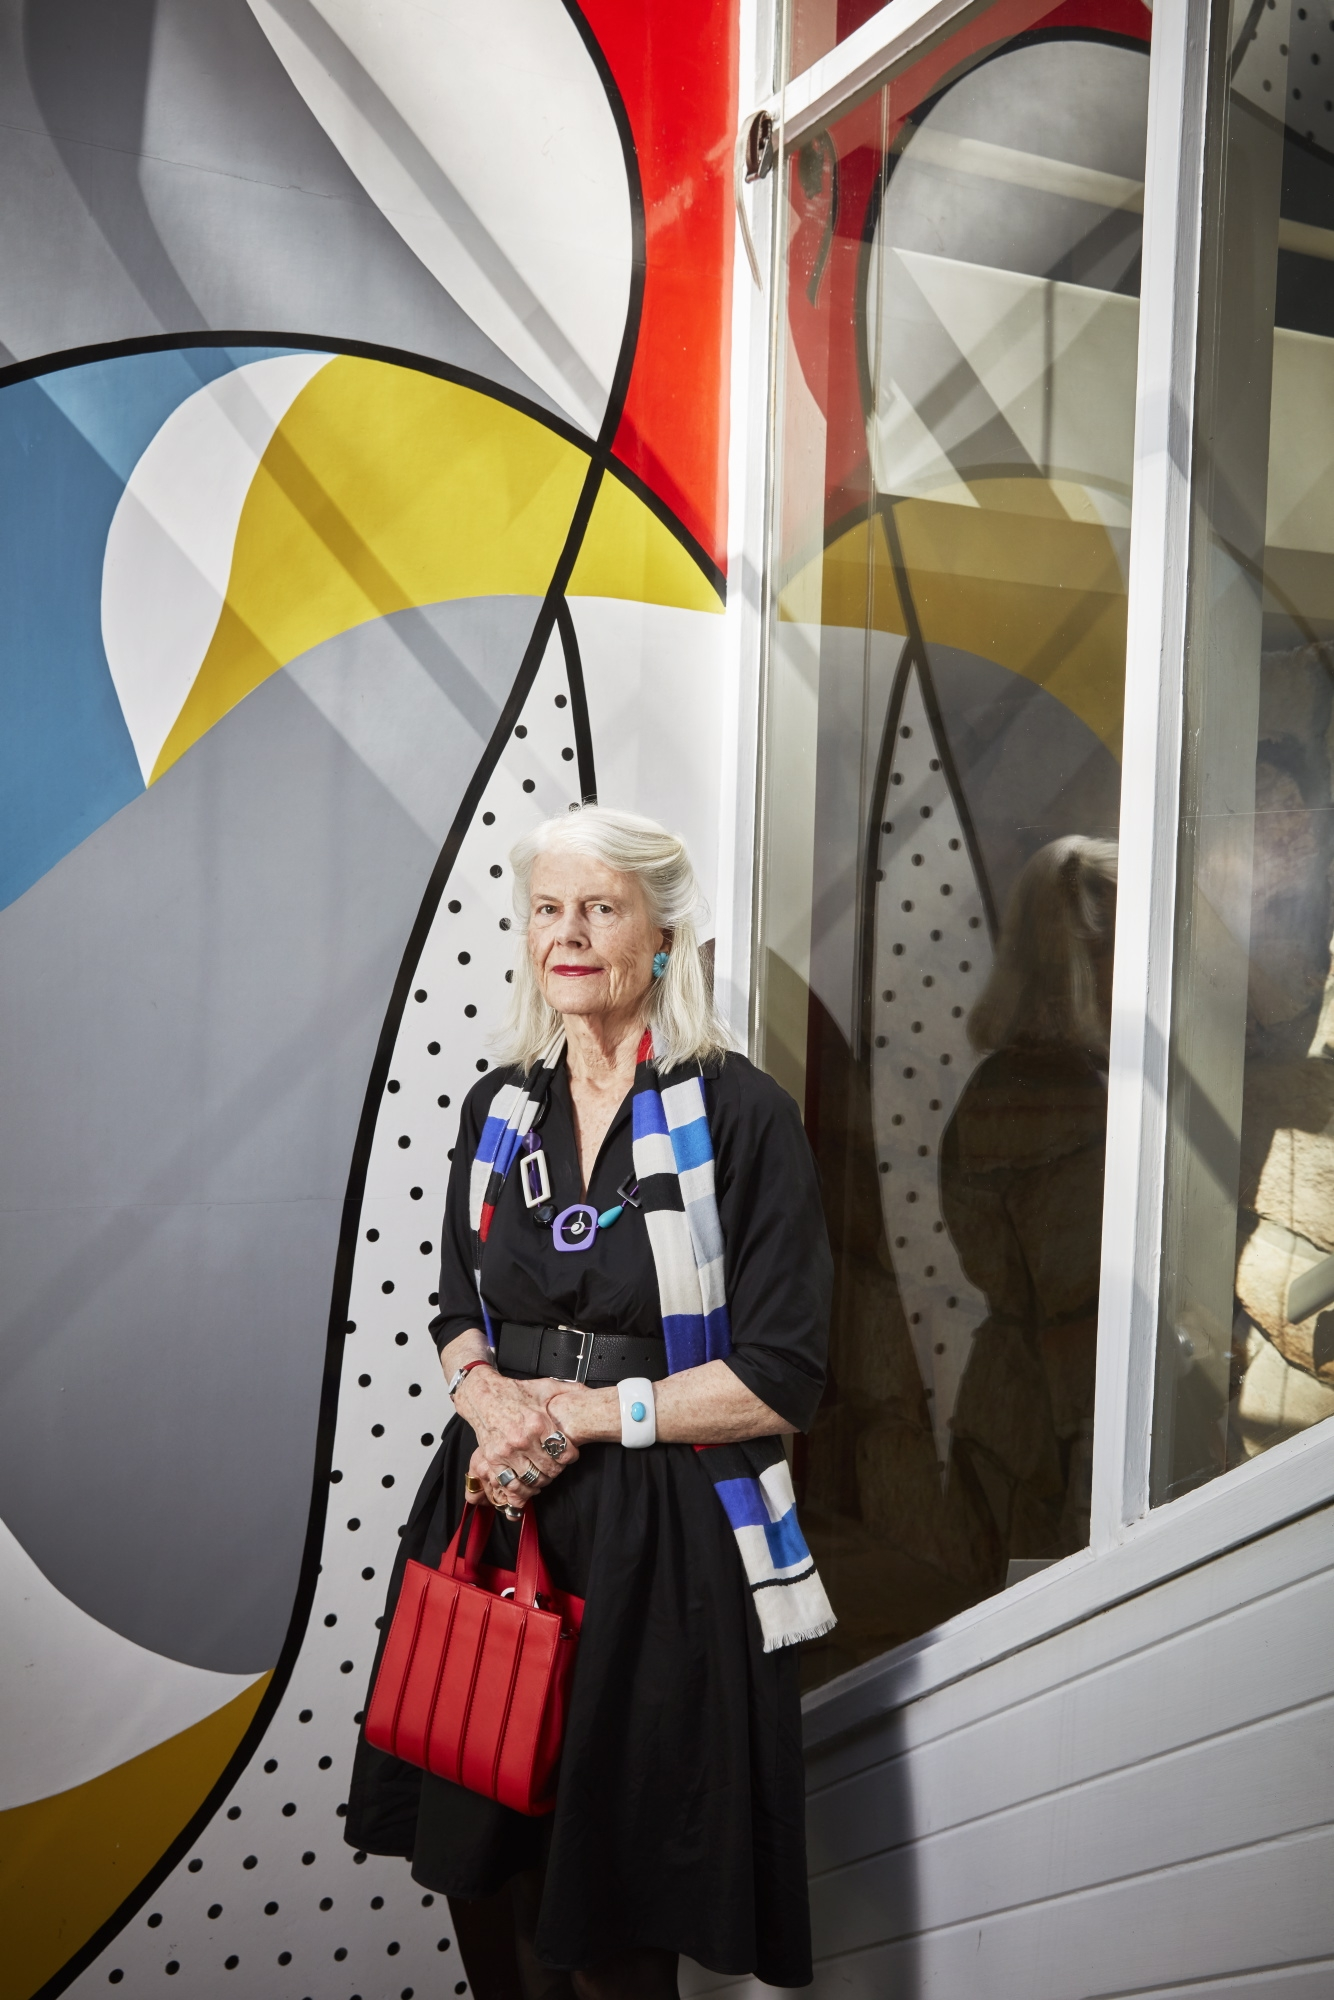 Woman standing in front of colourful modernist mural.